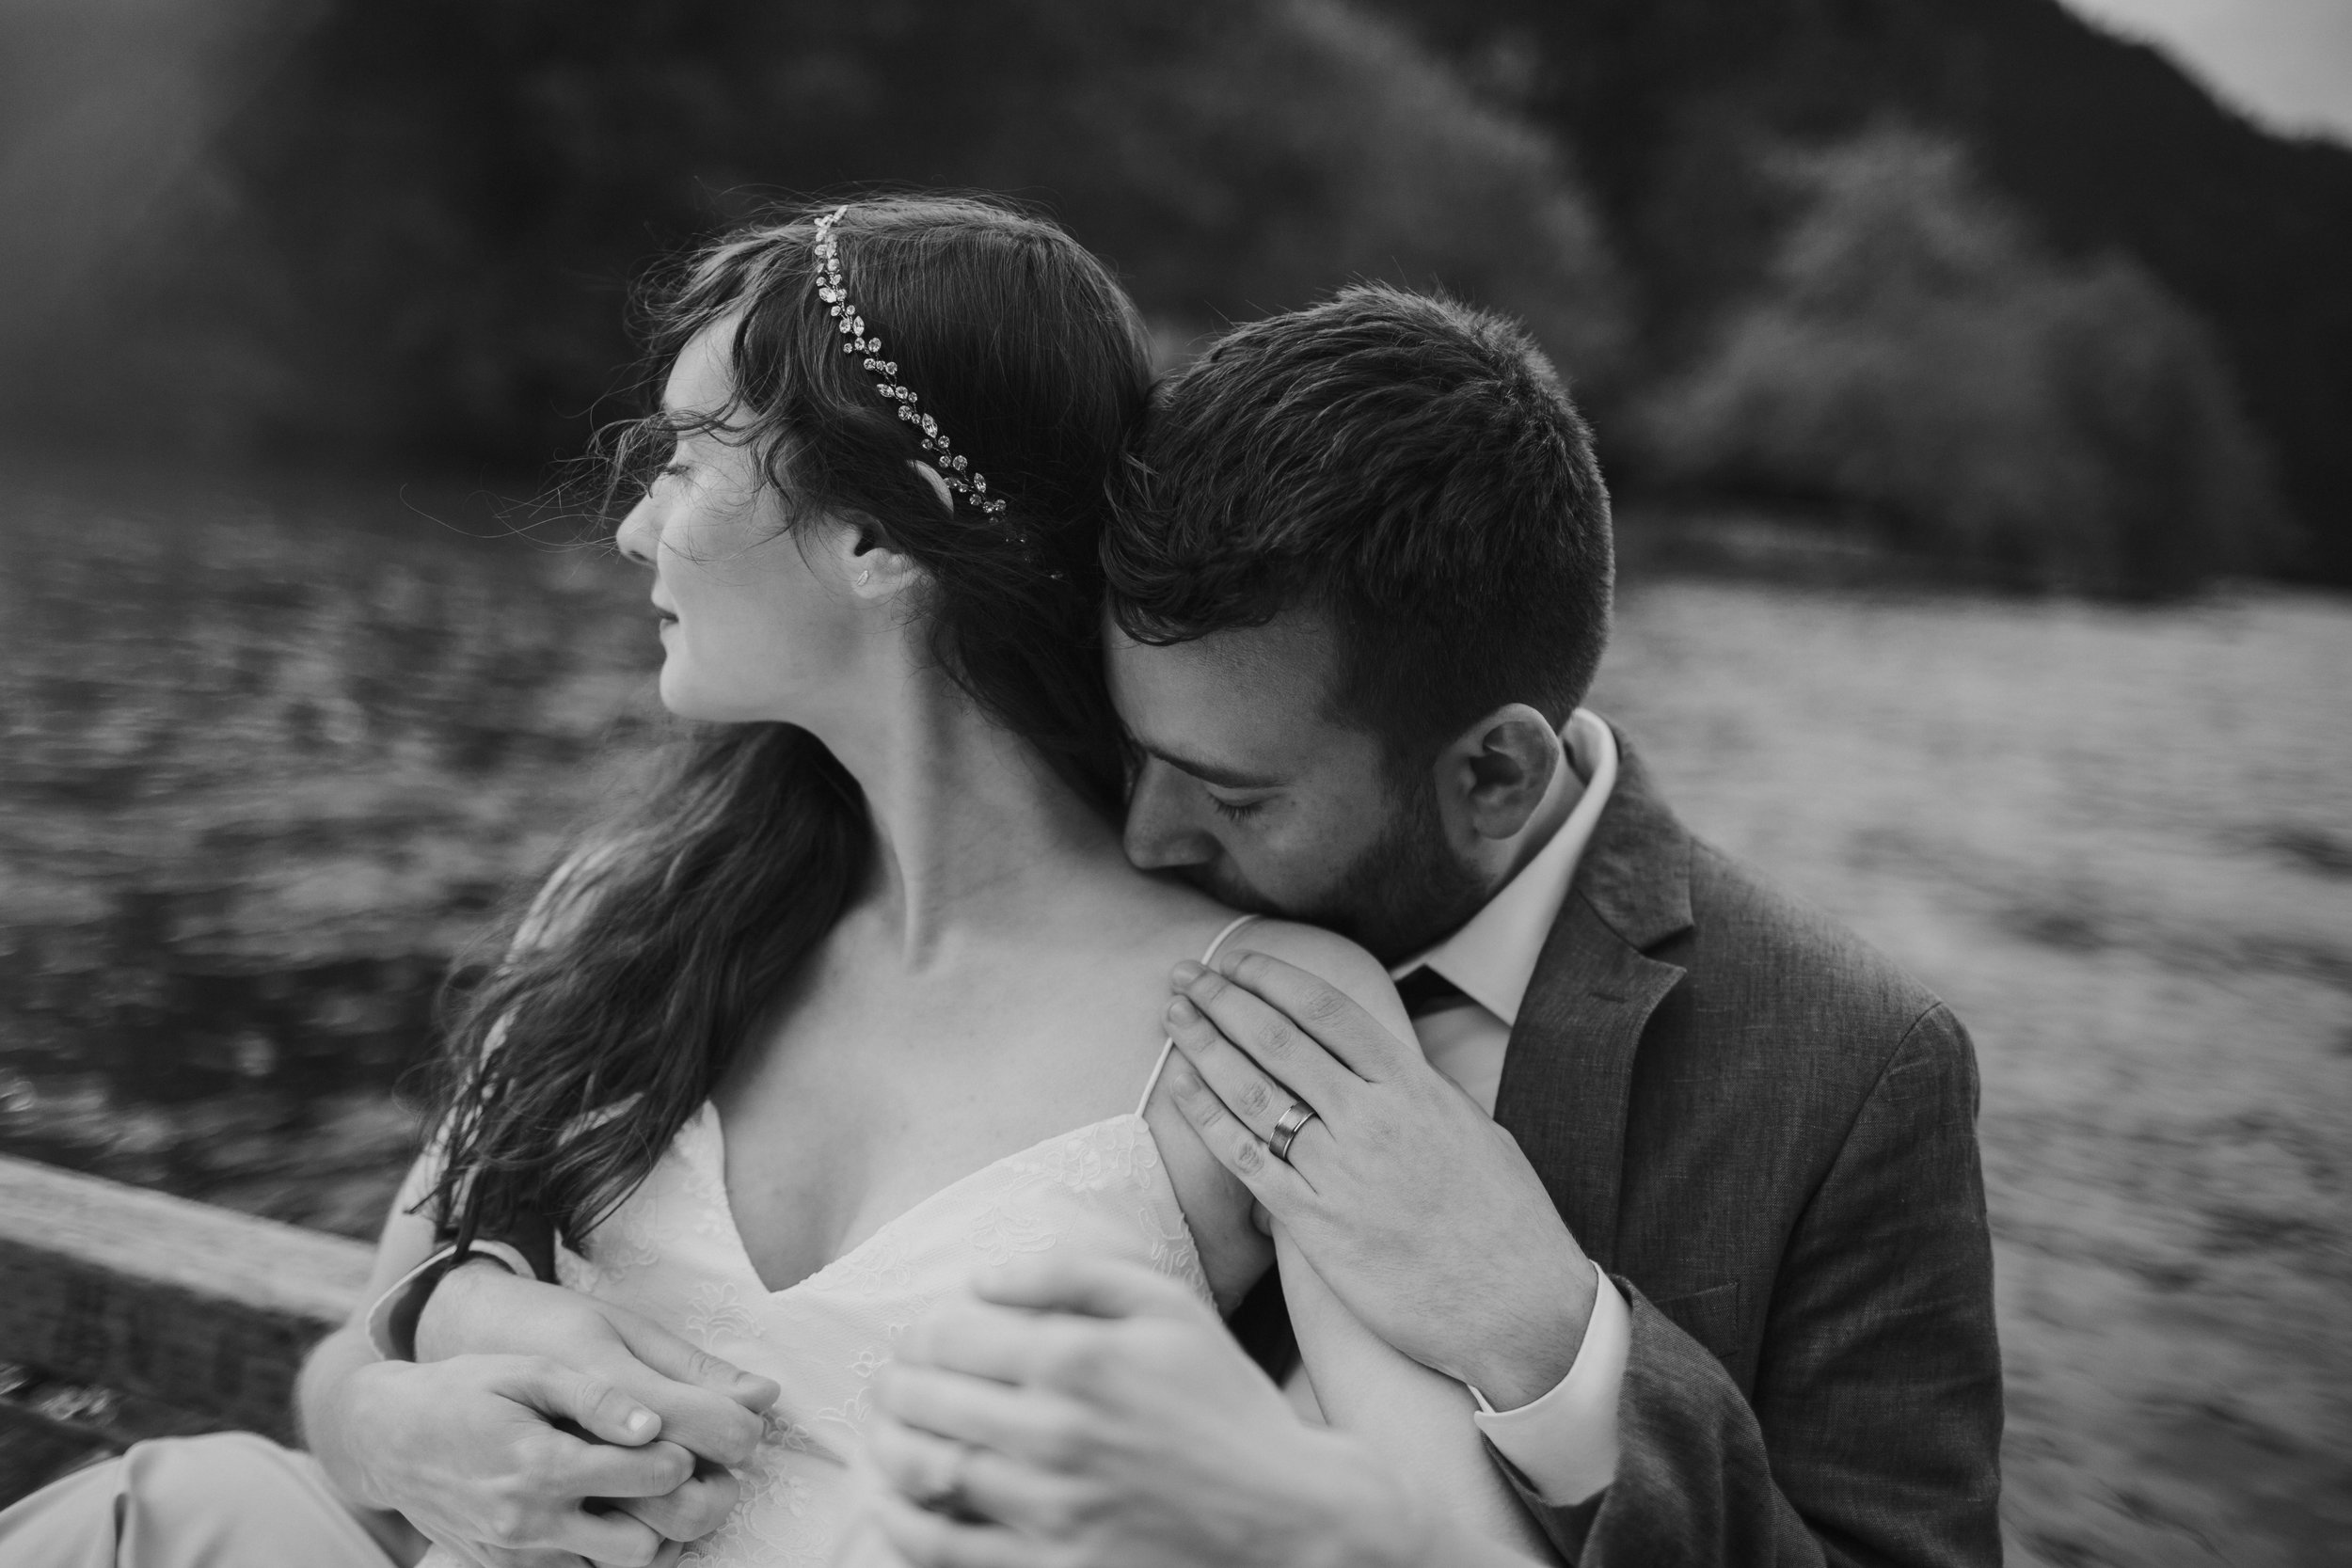 PNW-elopement-wedding-engagement-olympic national park-port angeles-hurricane ridge-lake crescent-kayla dawn photography- photographer-photography-kayladawnphoto-239.jpg